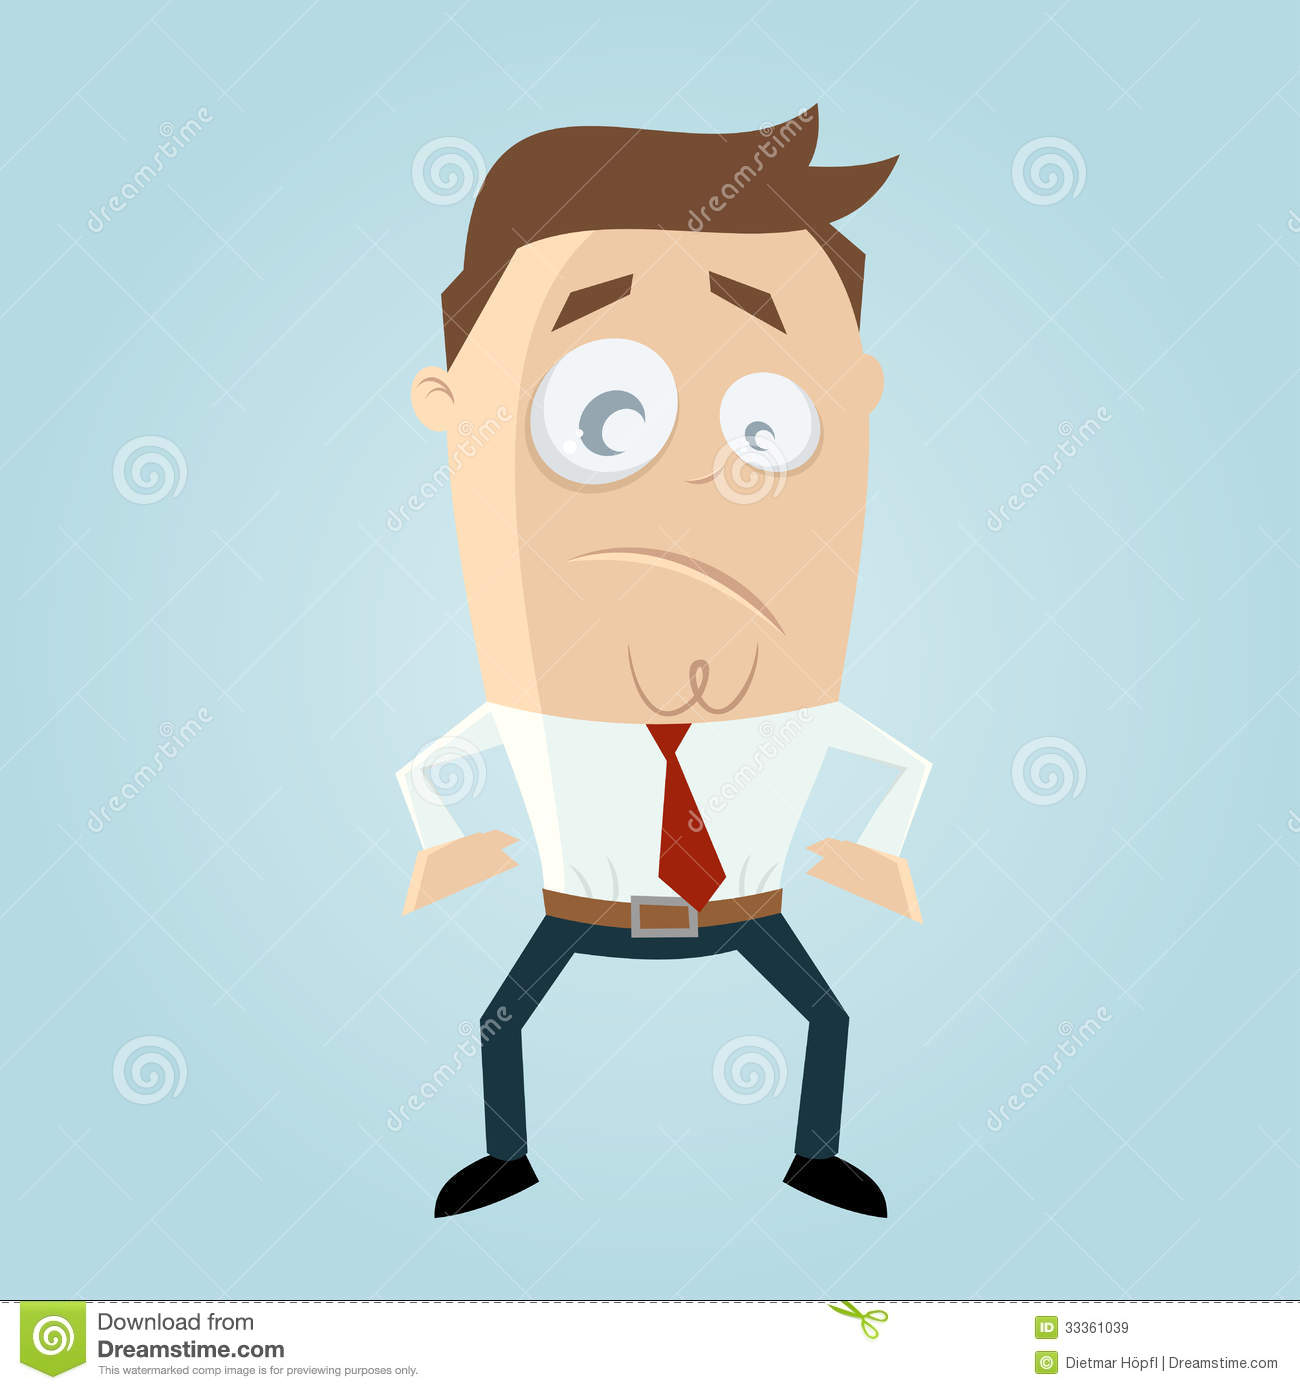 Cartoon Man With Tight Belt Royalty Free Stock Images.